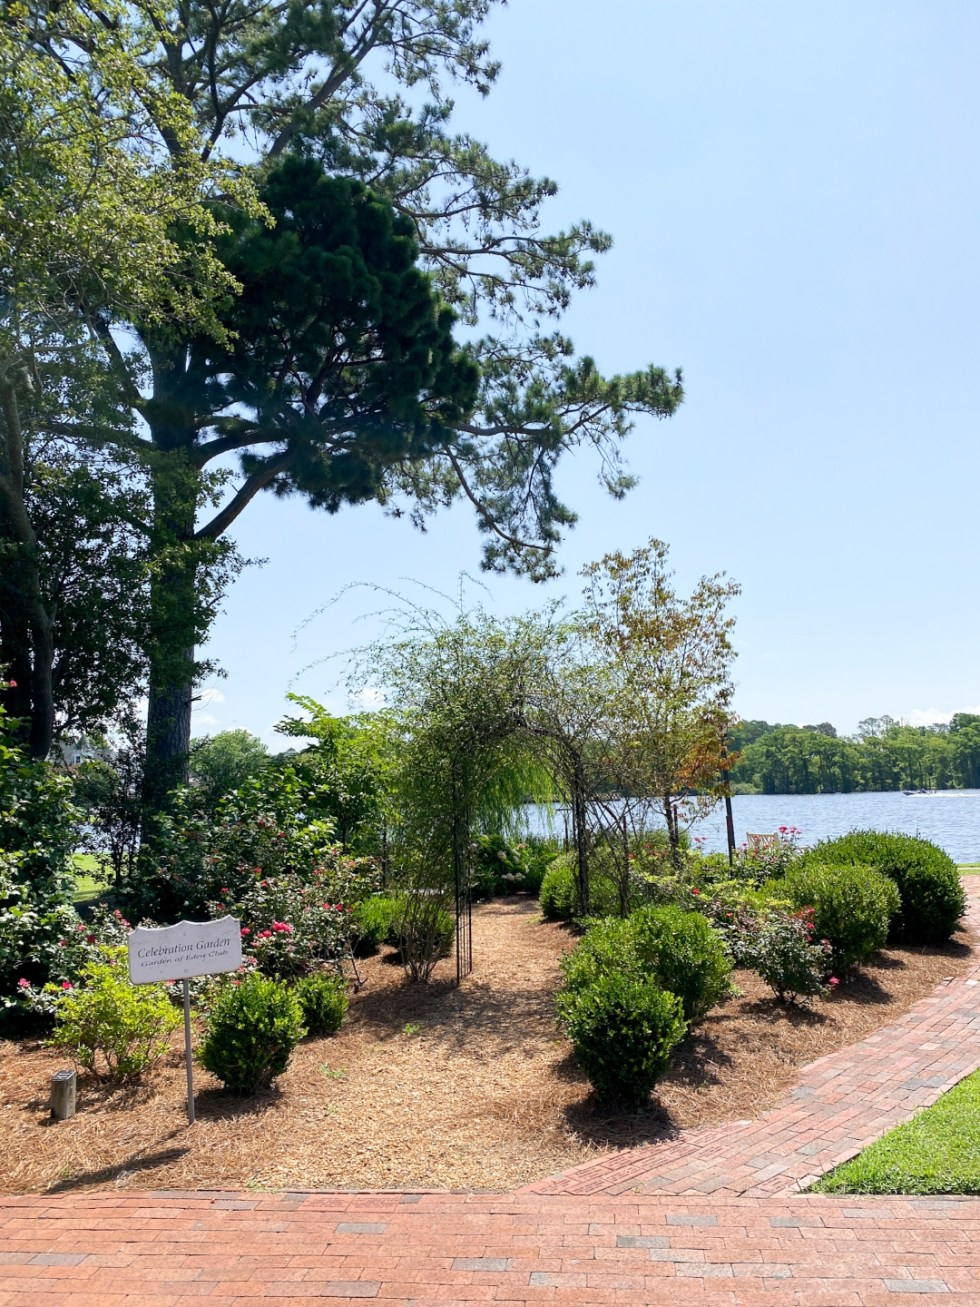 Top 10 Best Things to Do in Edenton, NC: A Complete Travel Guide - I'm Fixin' To - @imfixintoblog | Edenton Travel Guide by popular NC travel guid, I'm Fixin' To: image of the Celebration Garden.